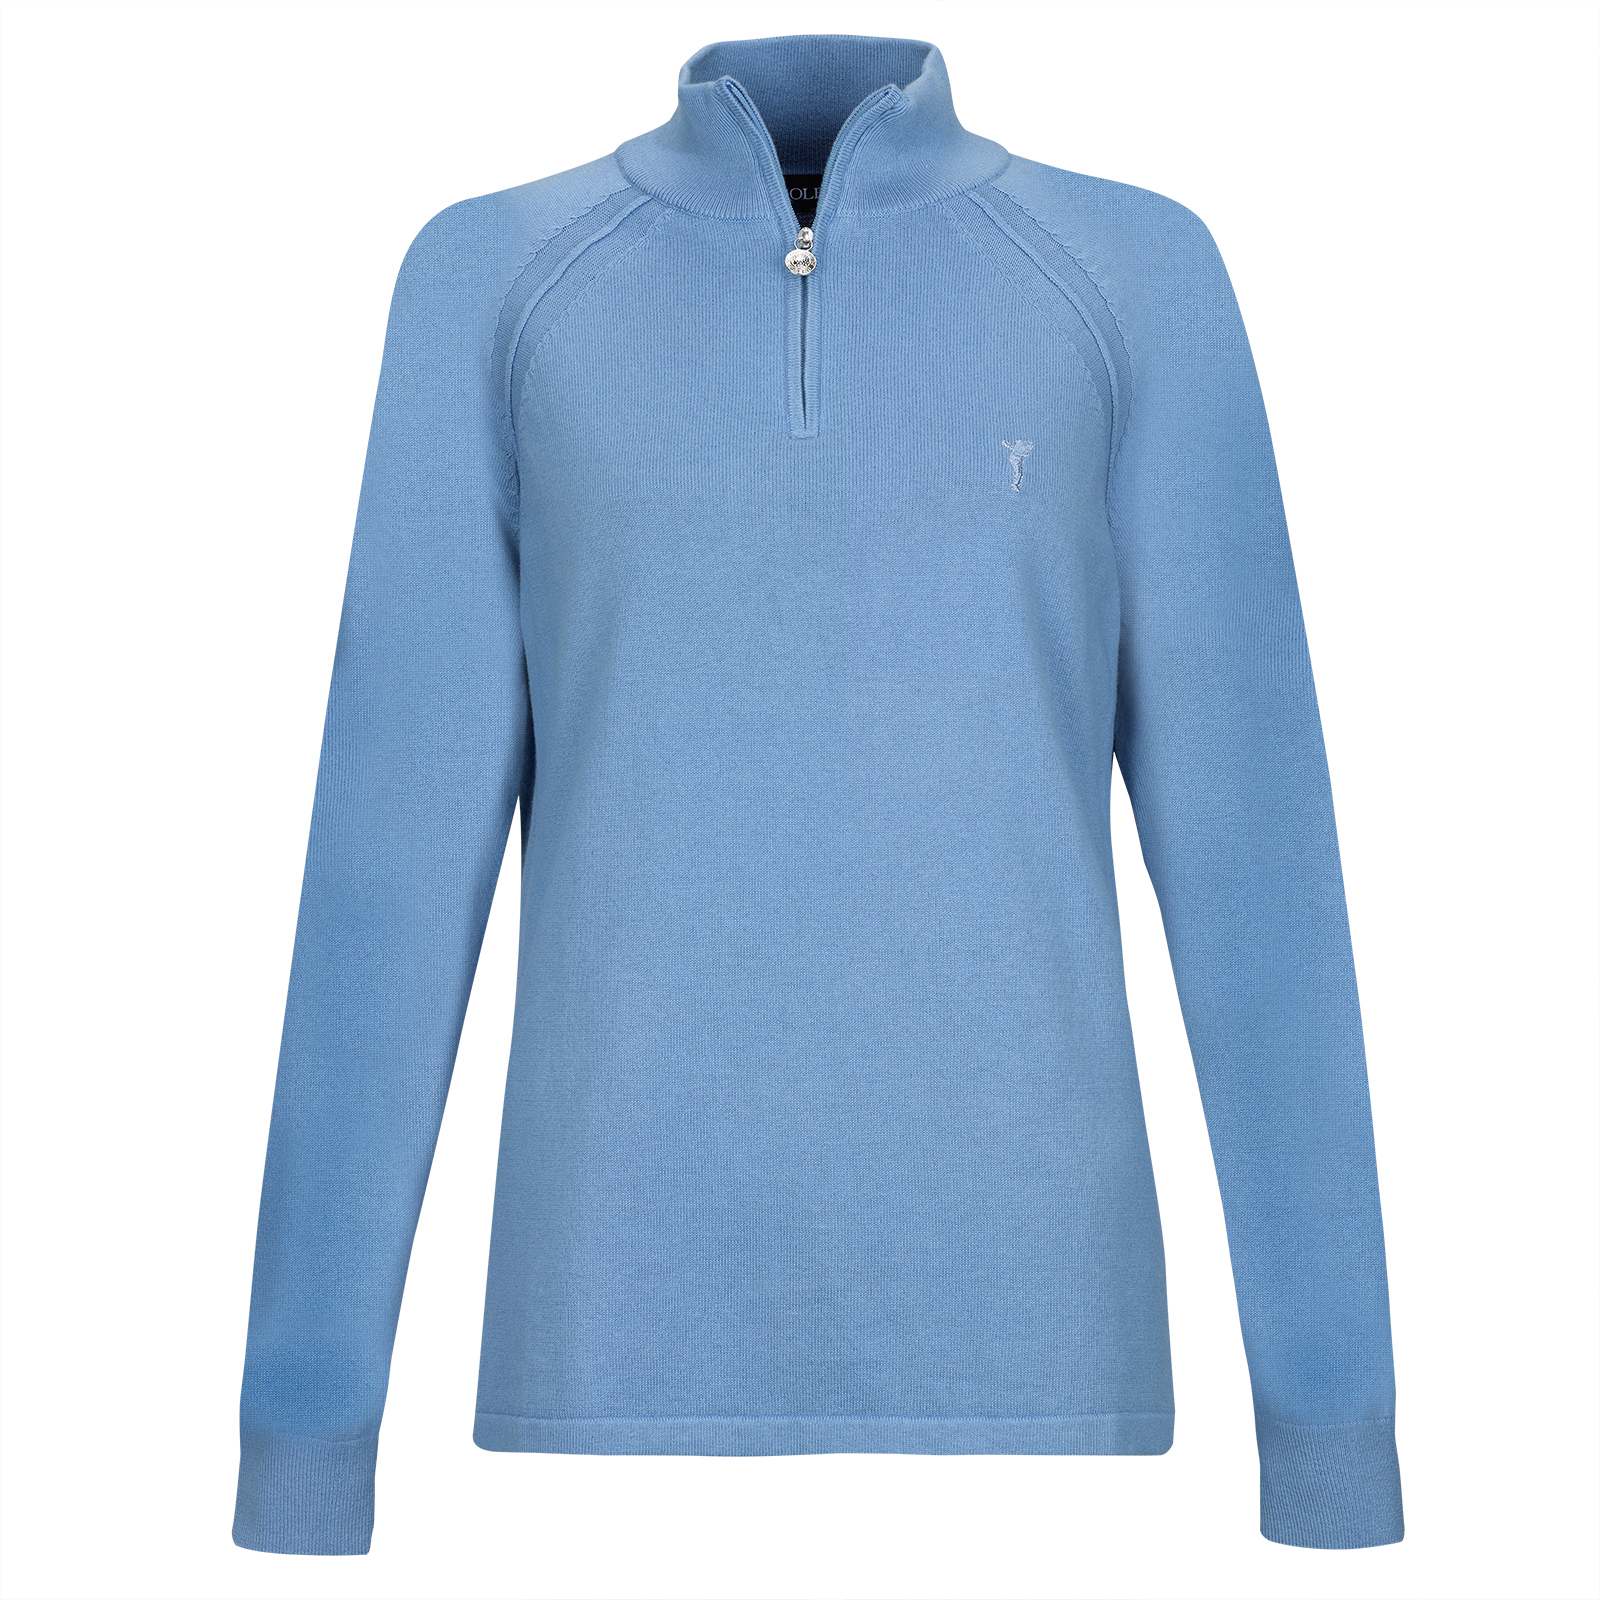 Ladies' cotton / cashmir pullover with short zip